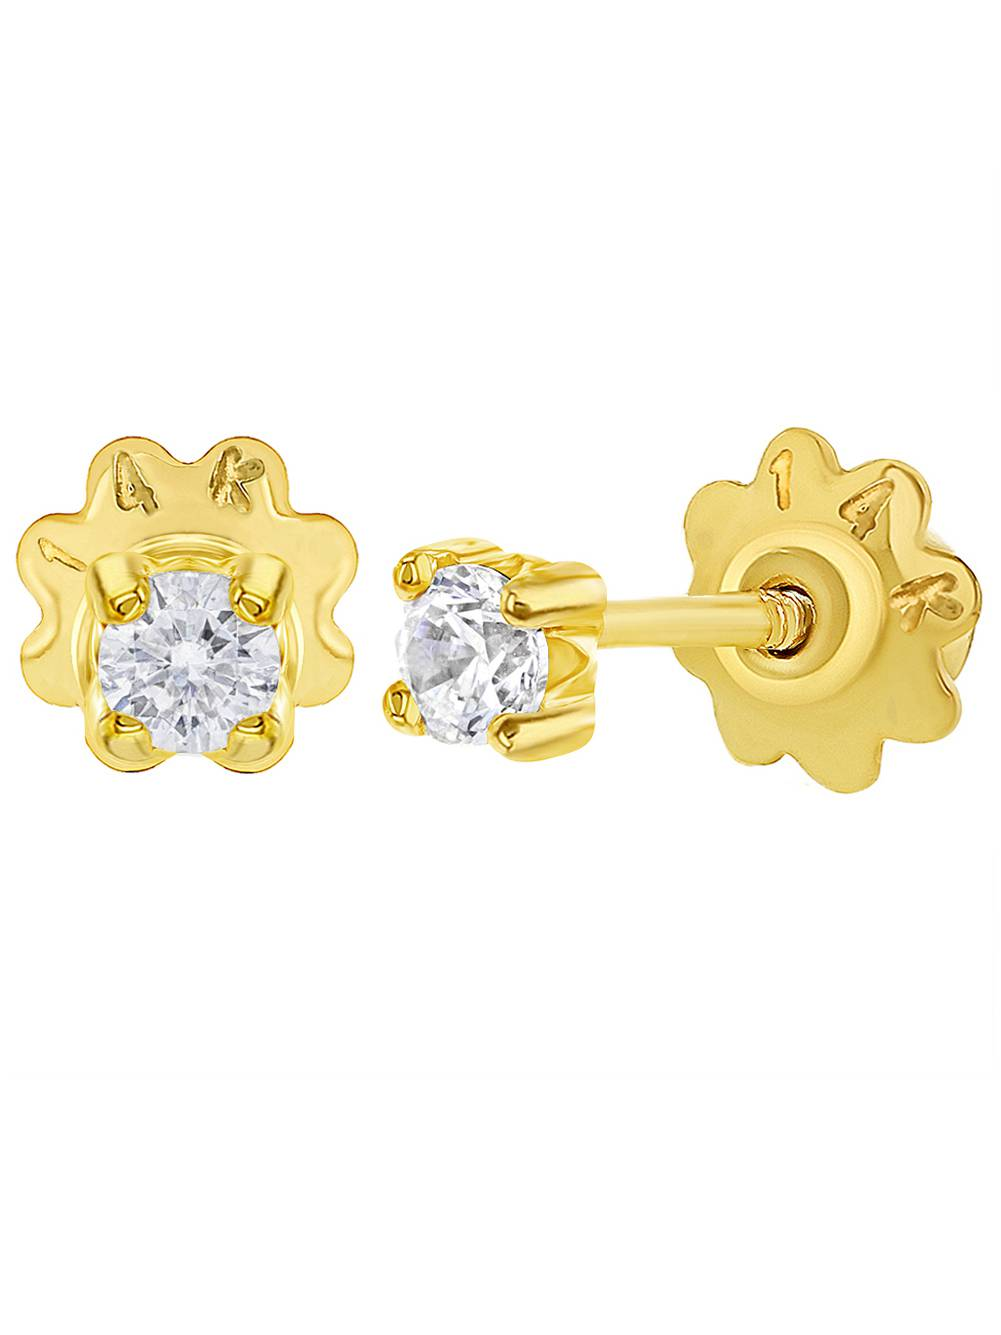 14k Yellow Gold Clear CZ Prong Set Screw Back Baby Toddlers Girls Earrings 3mm